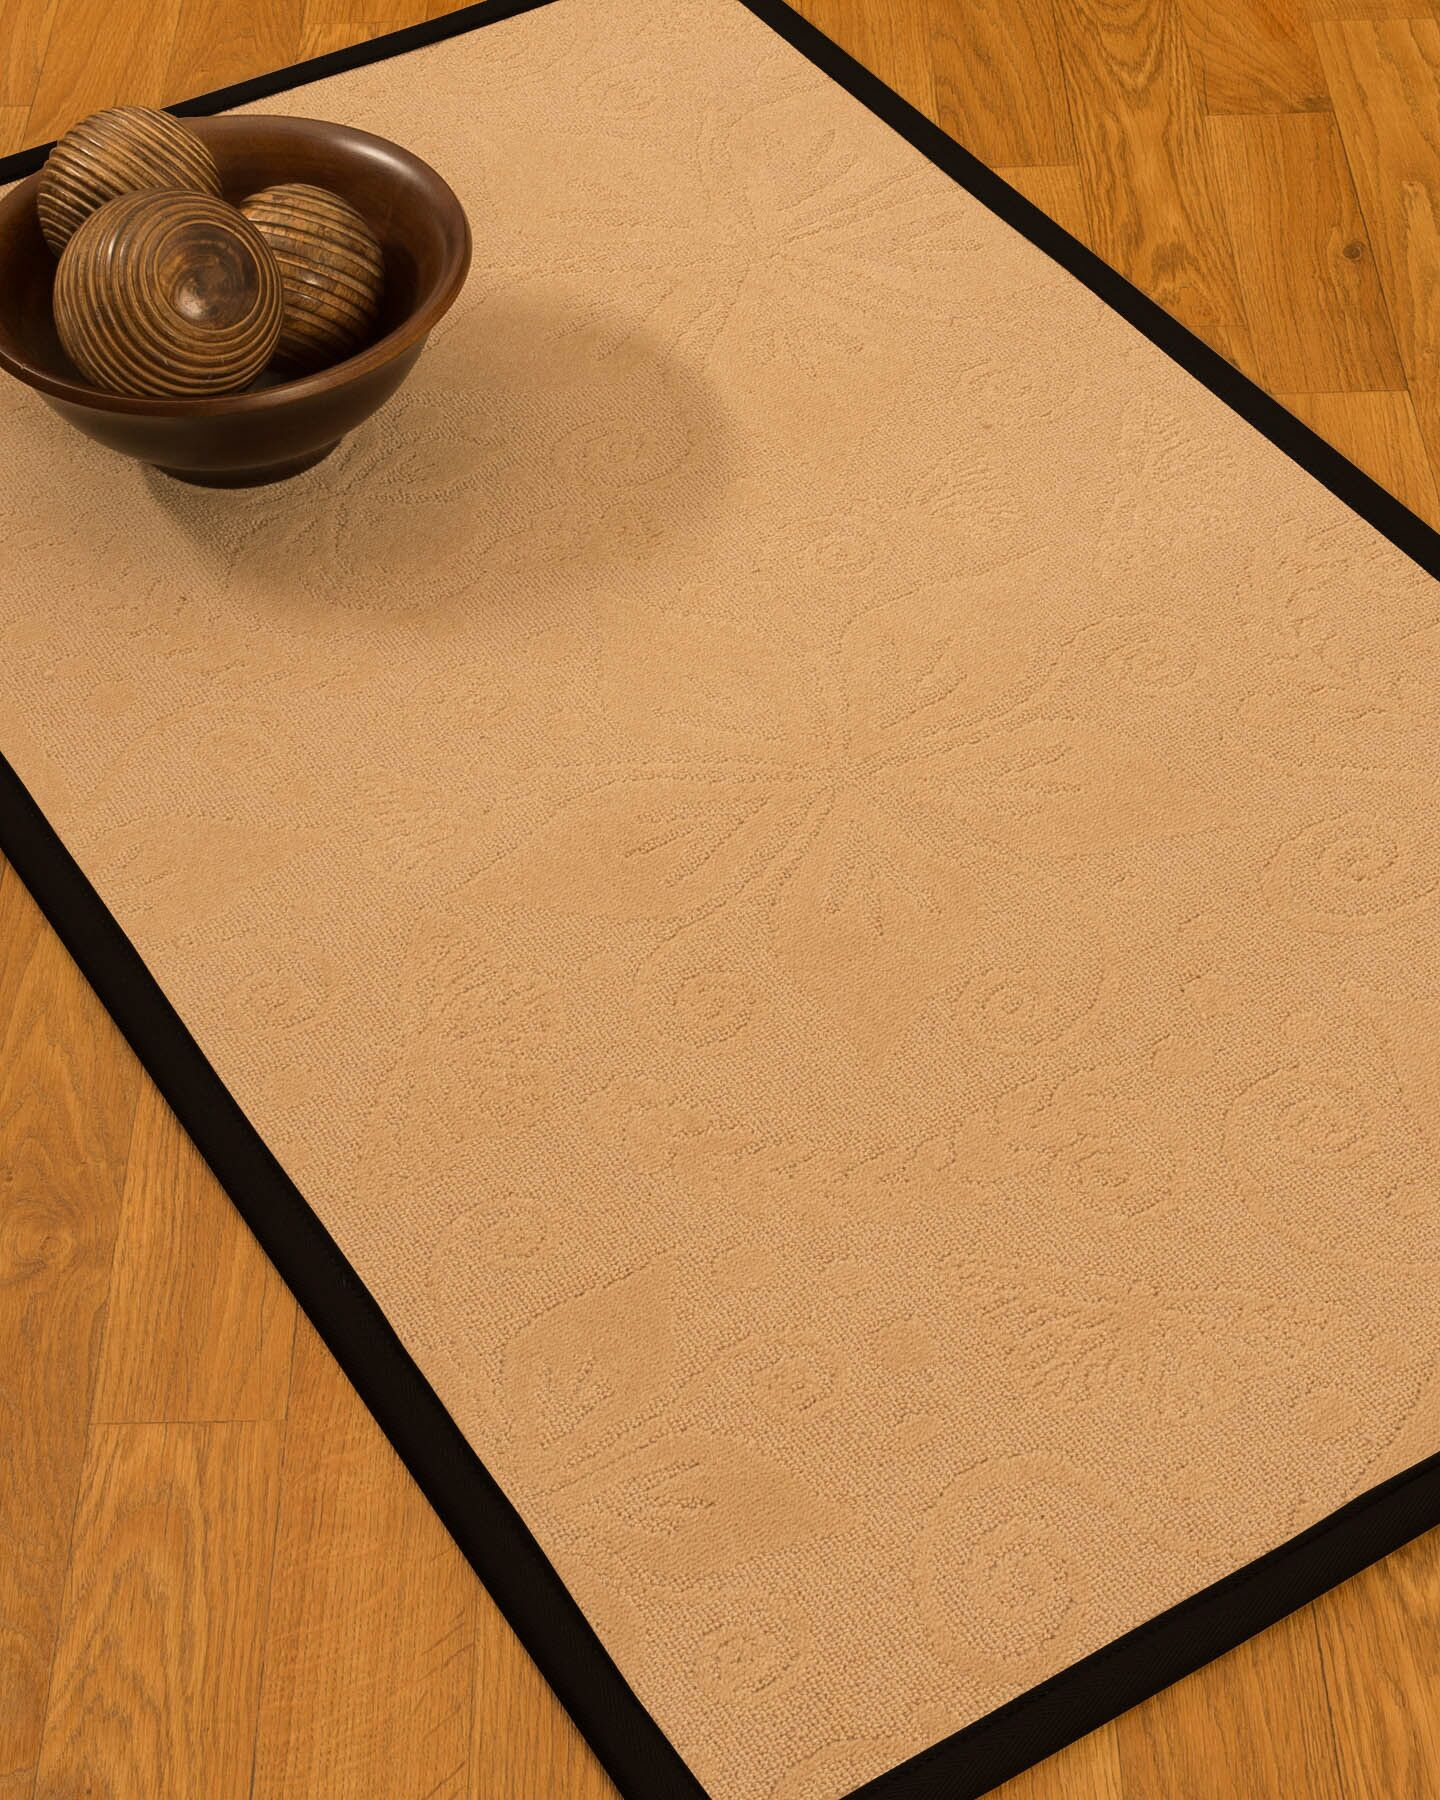 Vanmeter Border Hand-Woven Wool Beige/Black Area Rug Rug Size: Rectangle 12' x 15', Rug Pad Included: Yes